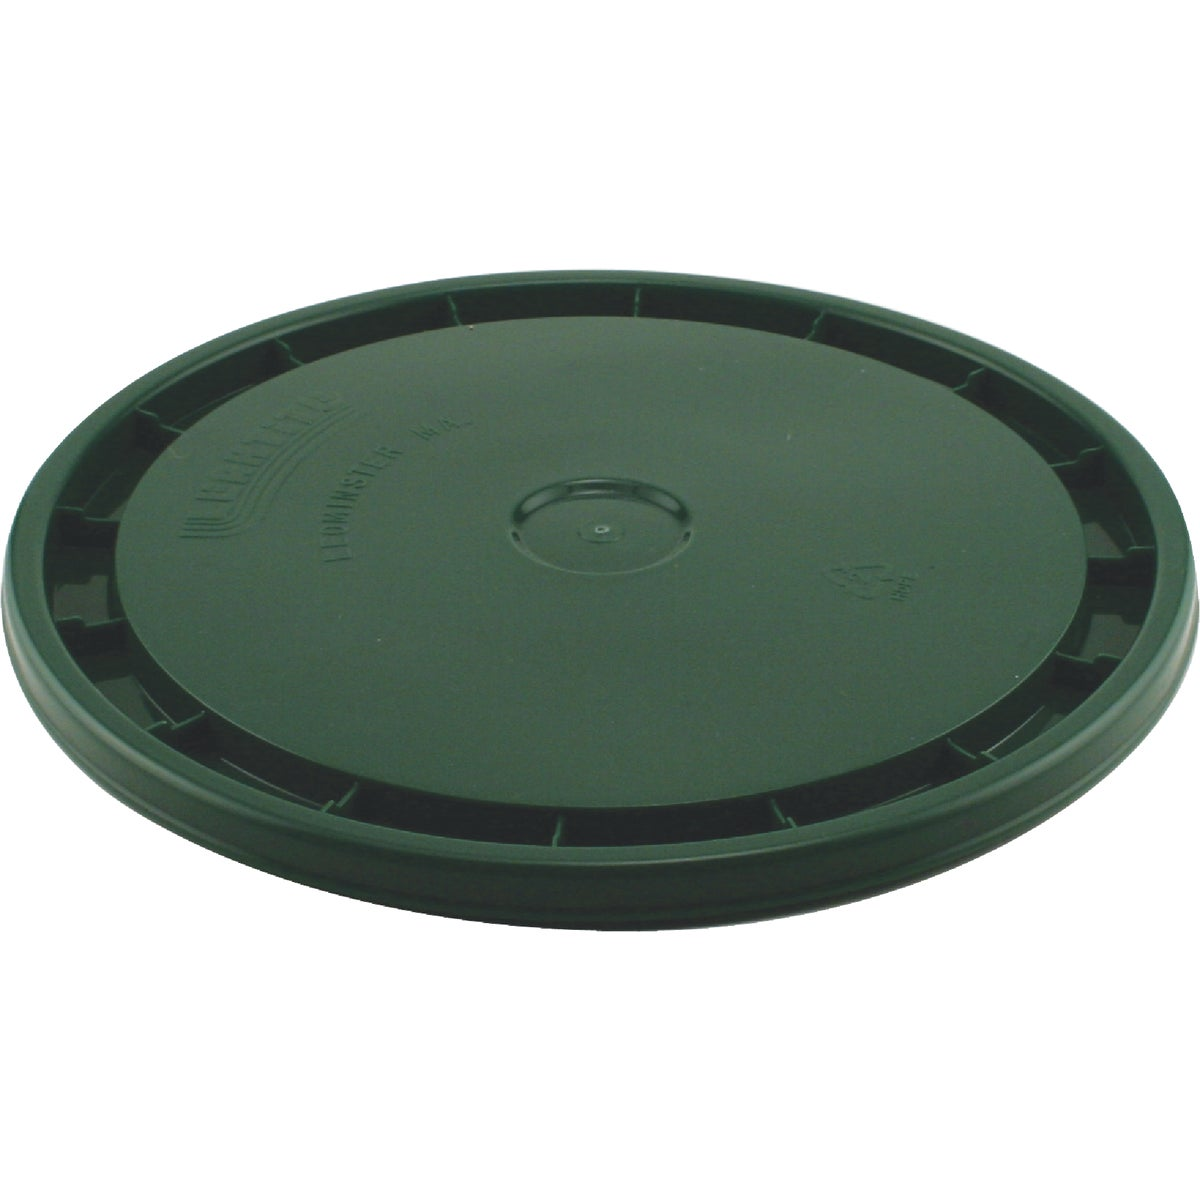 5GAL PAINT PAIL LID - 6GLDECG by Leaktite Corporation